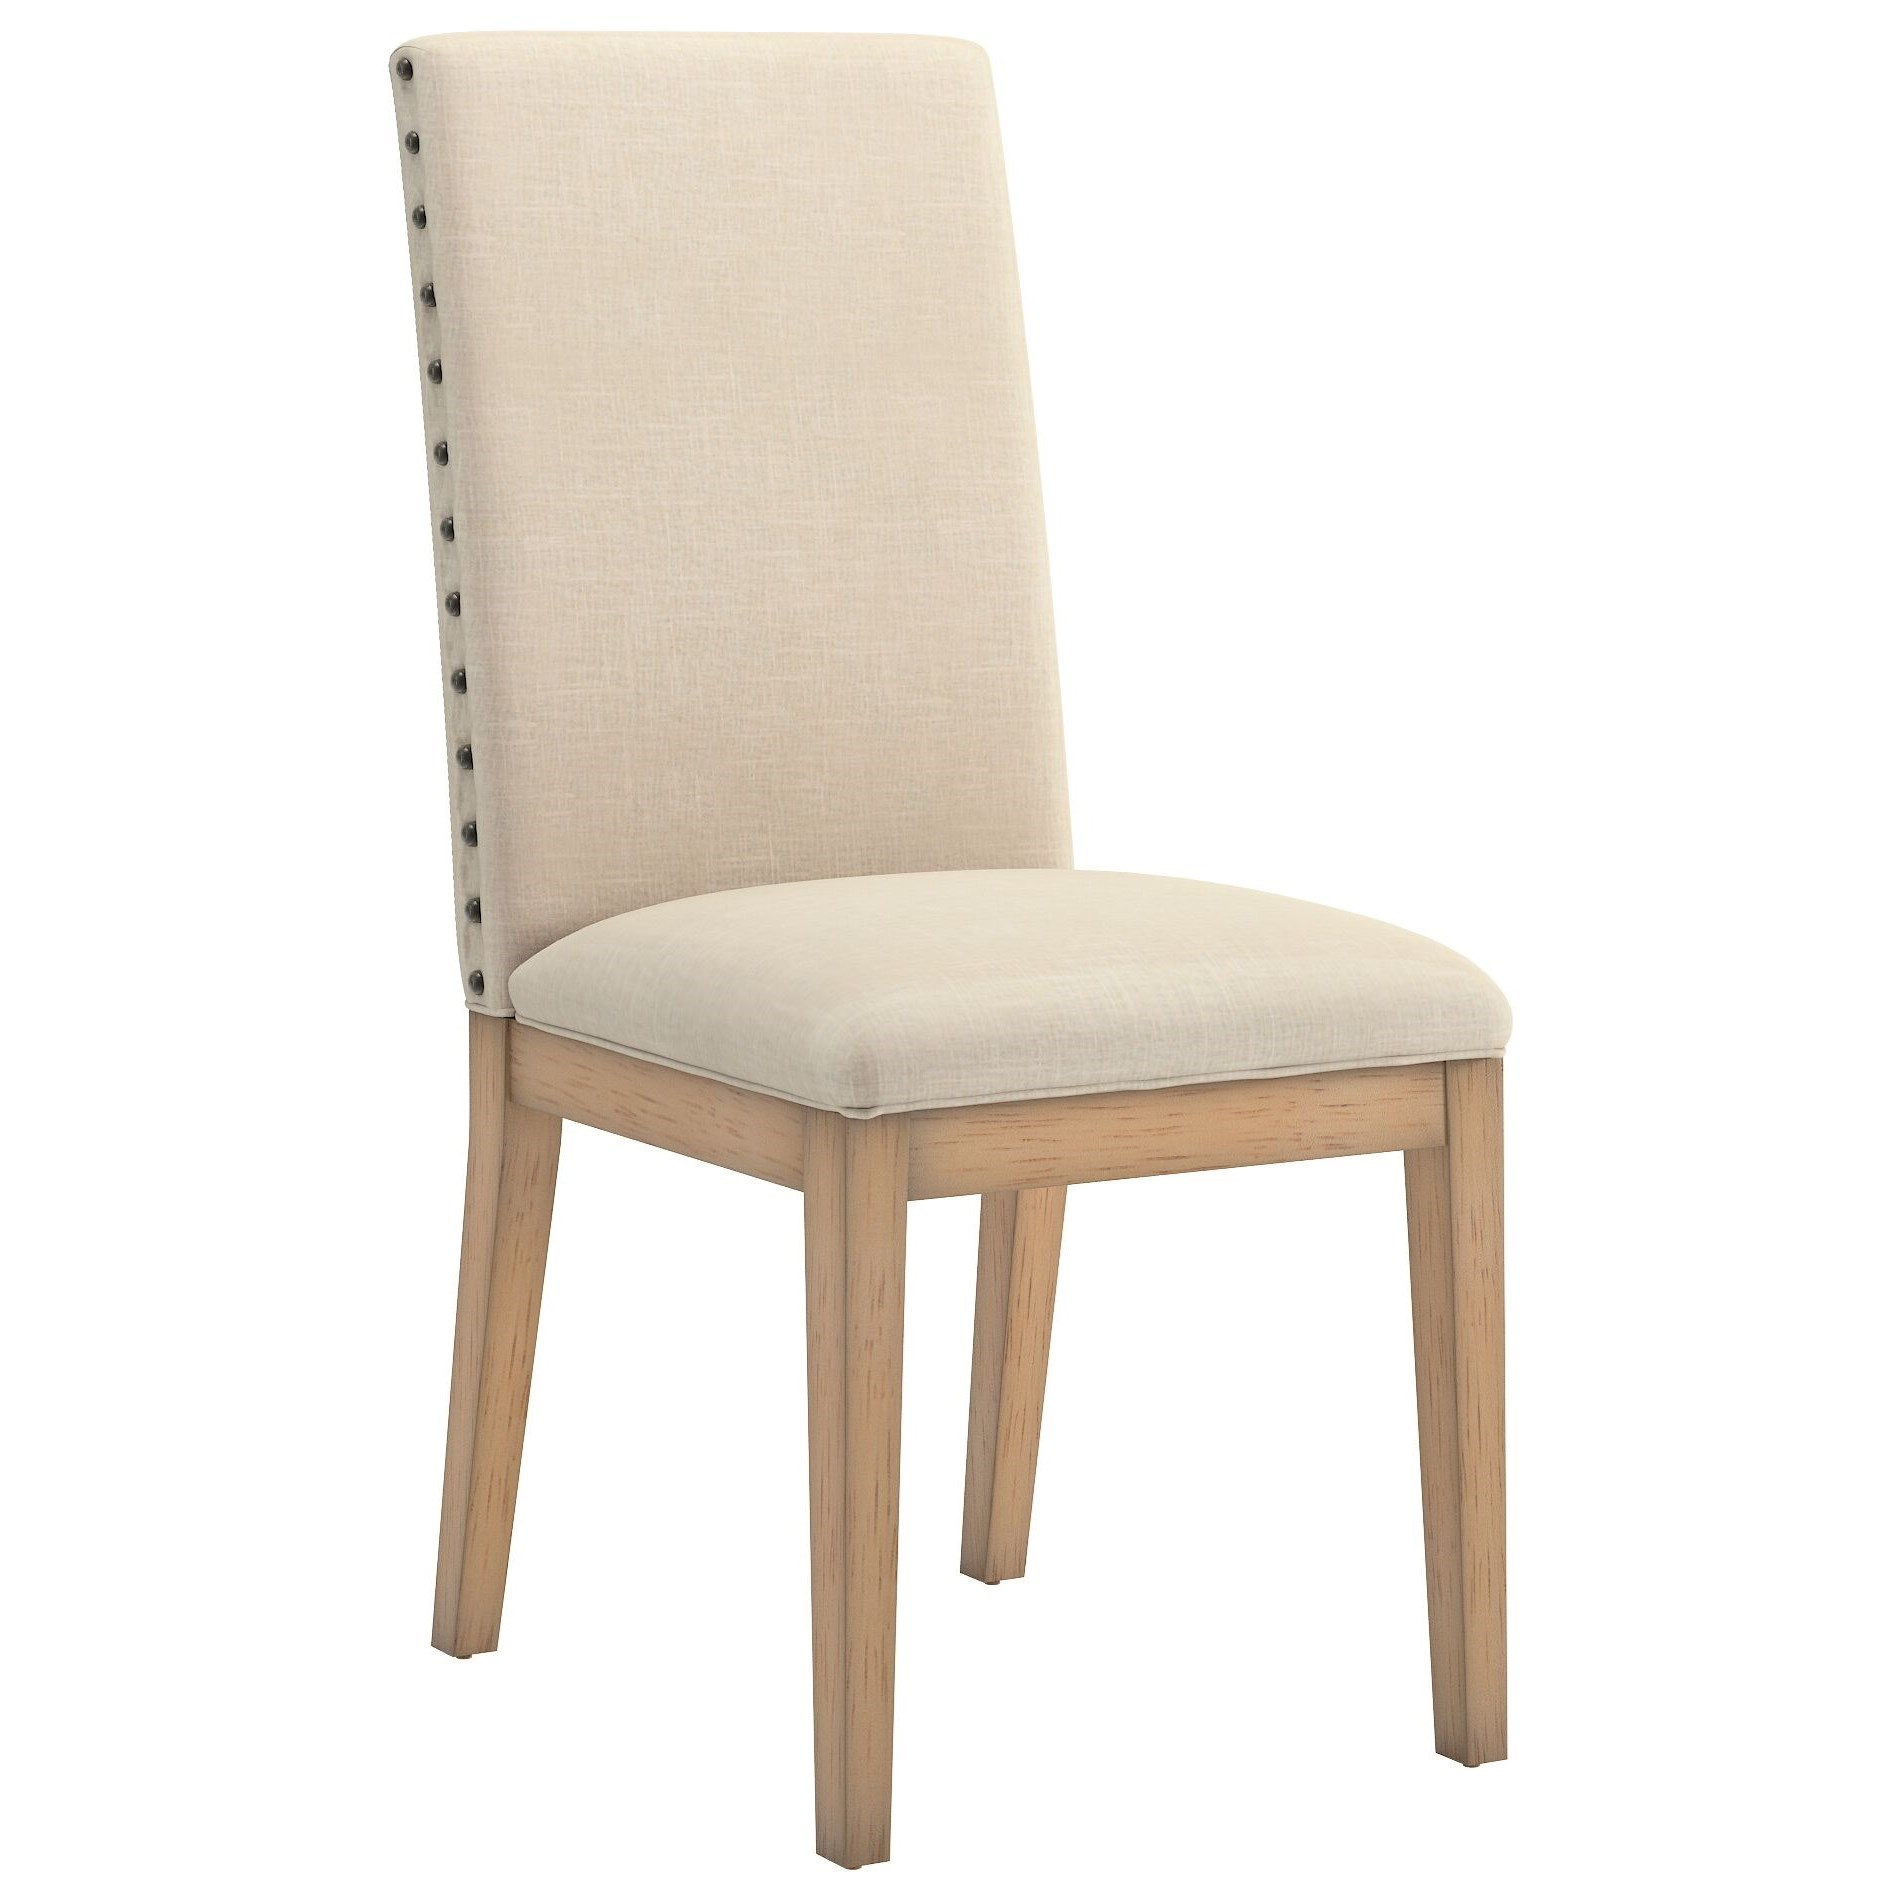 E848 Dining Chair by Homelegance at A1 Furniture & Mattress